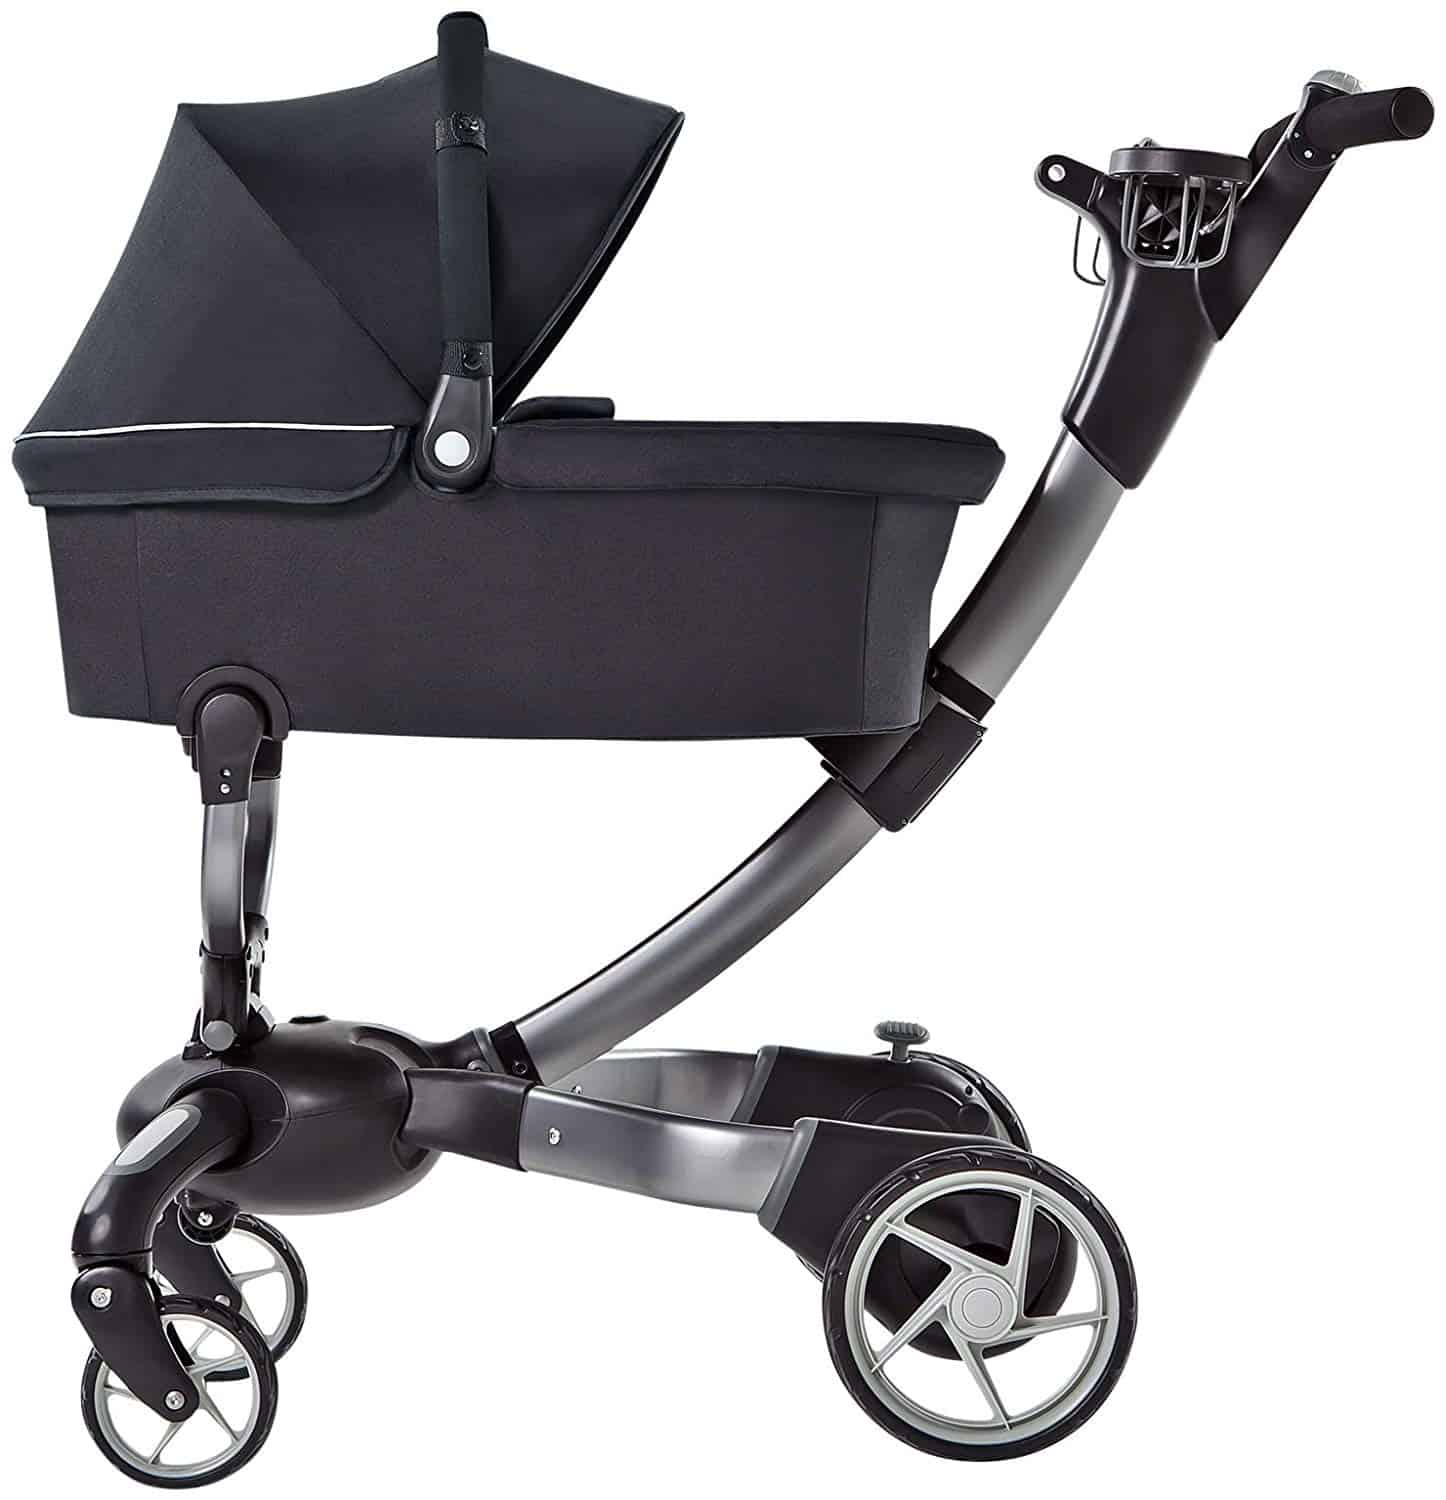 4moms origami stroller and bassinet